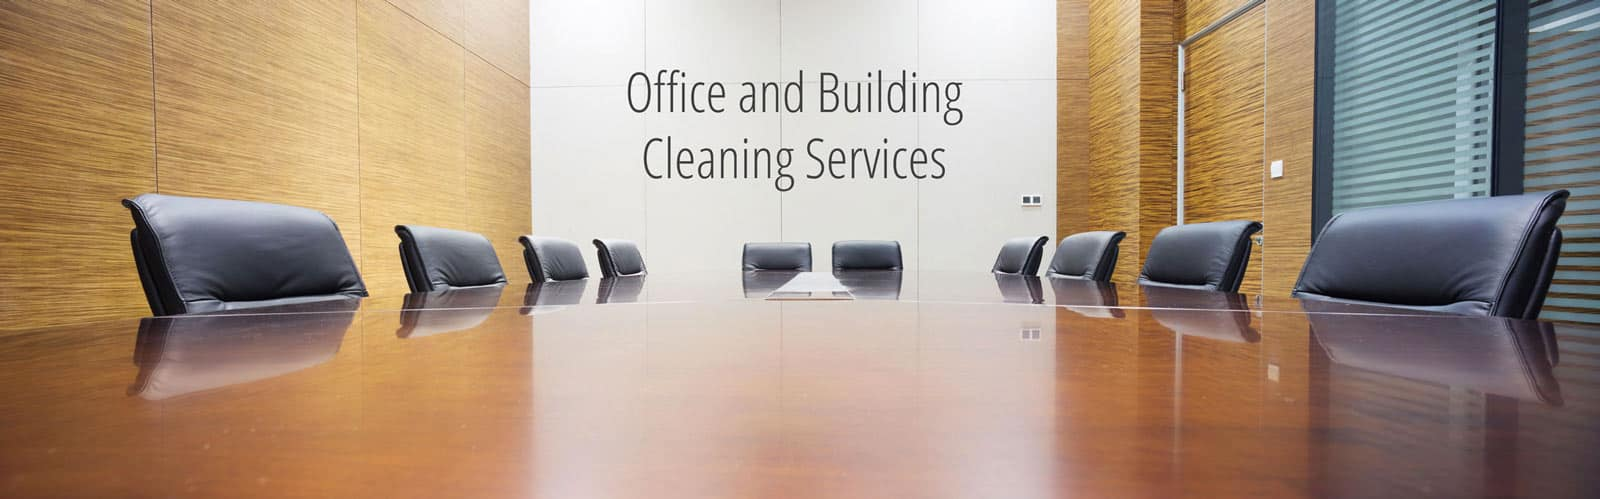 office building services 1600x499